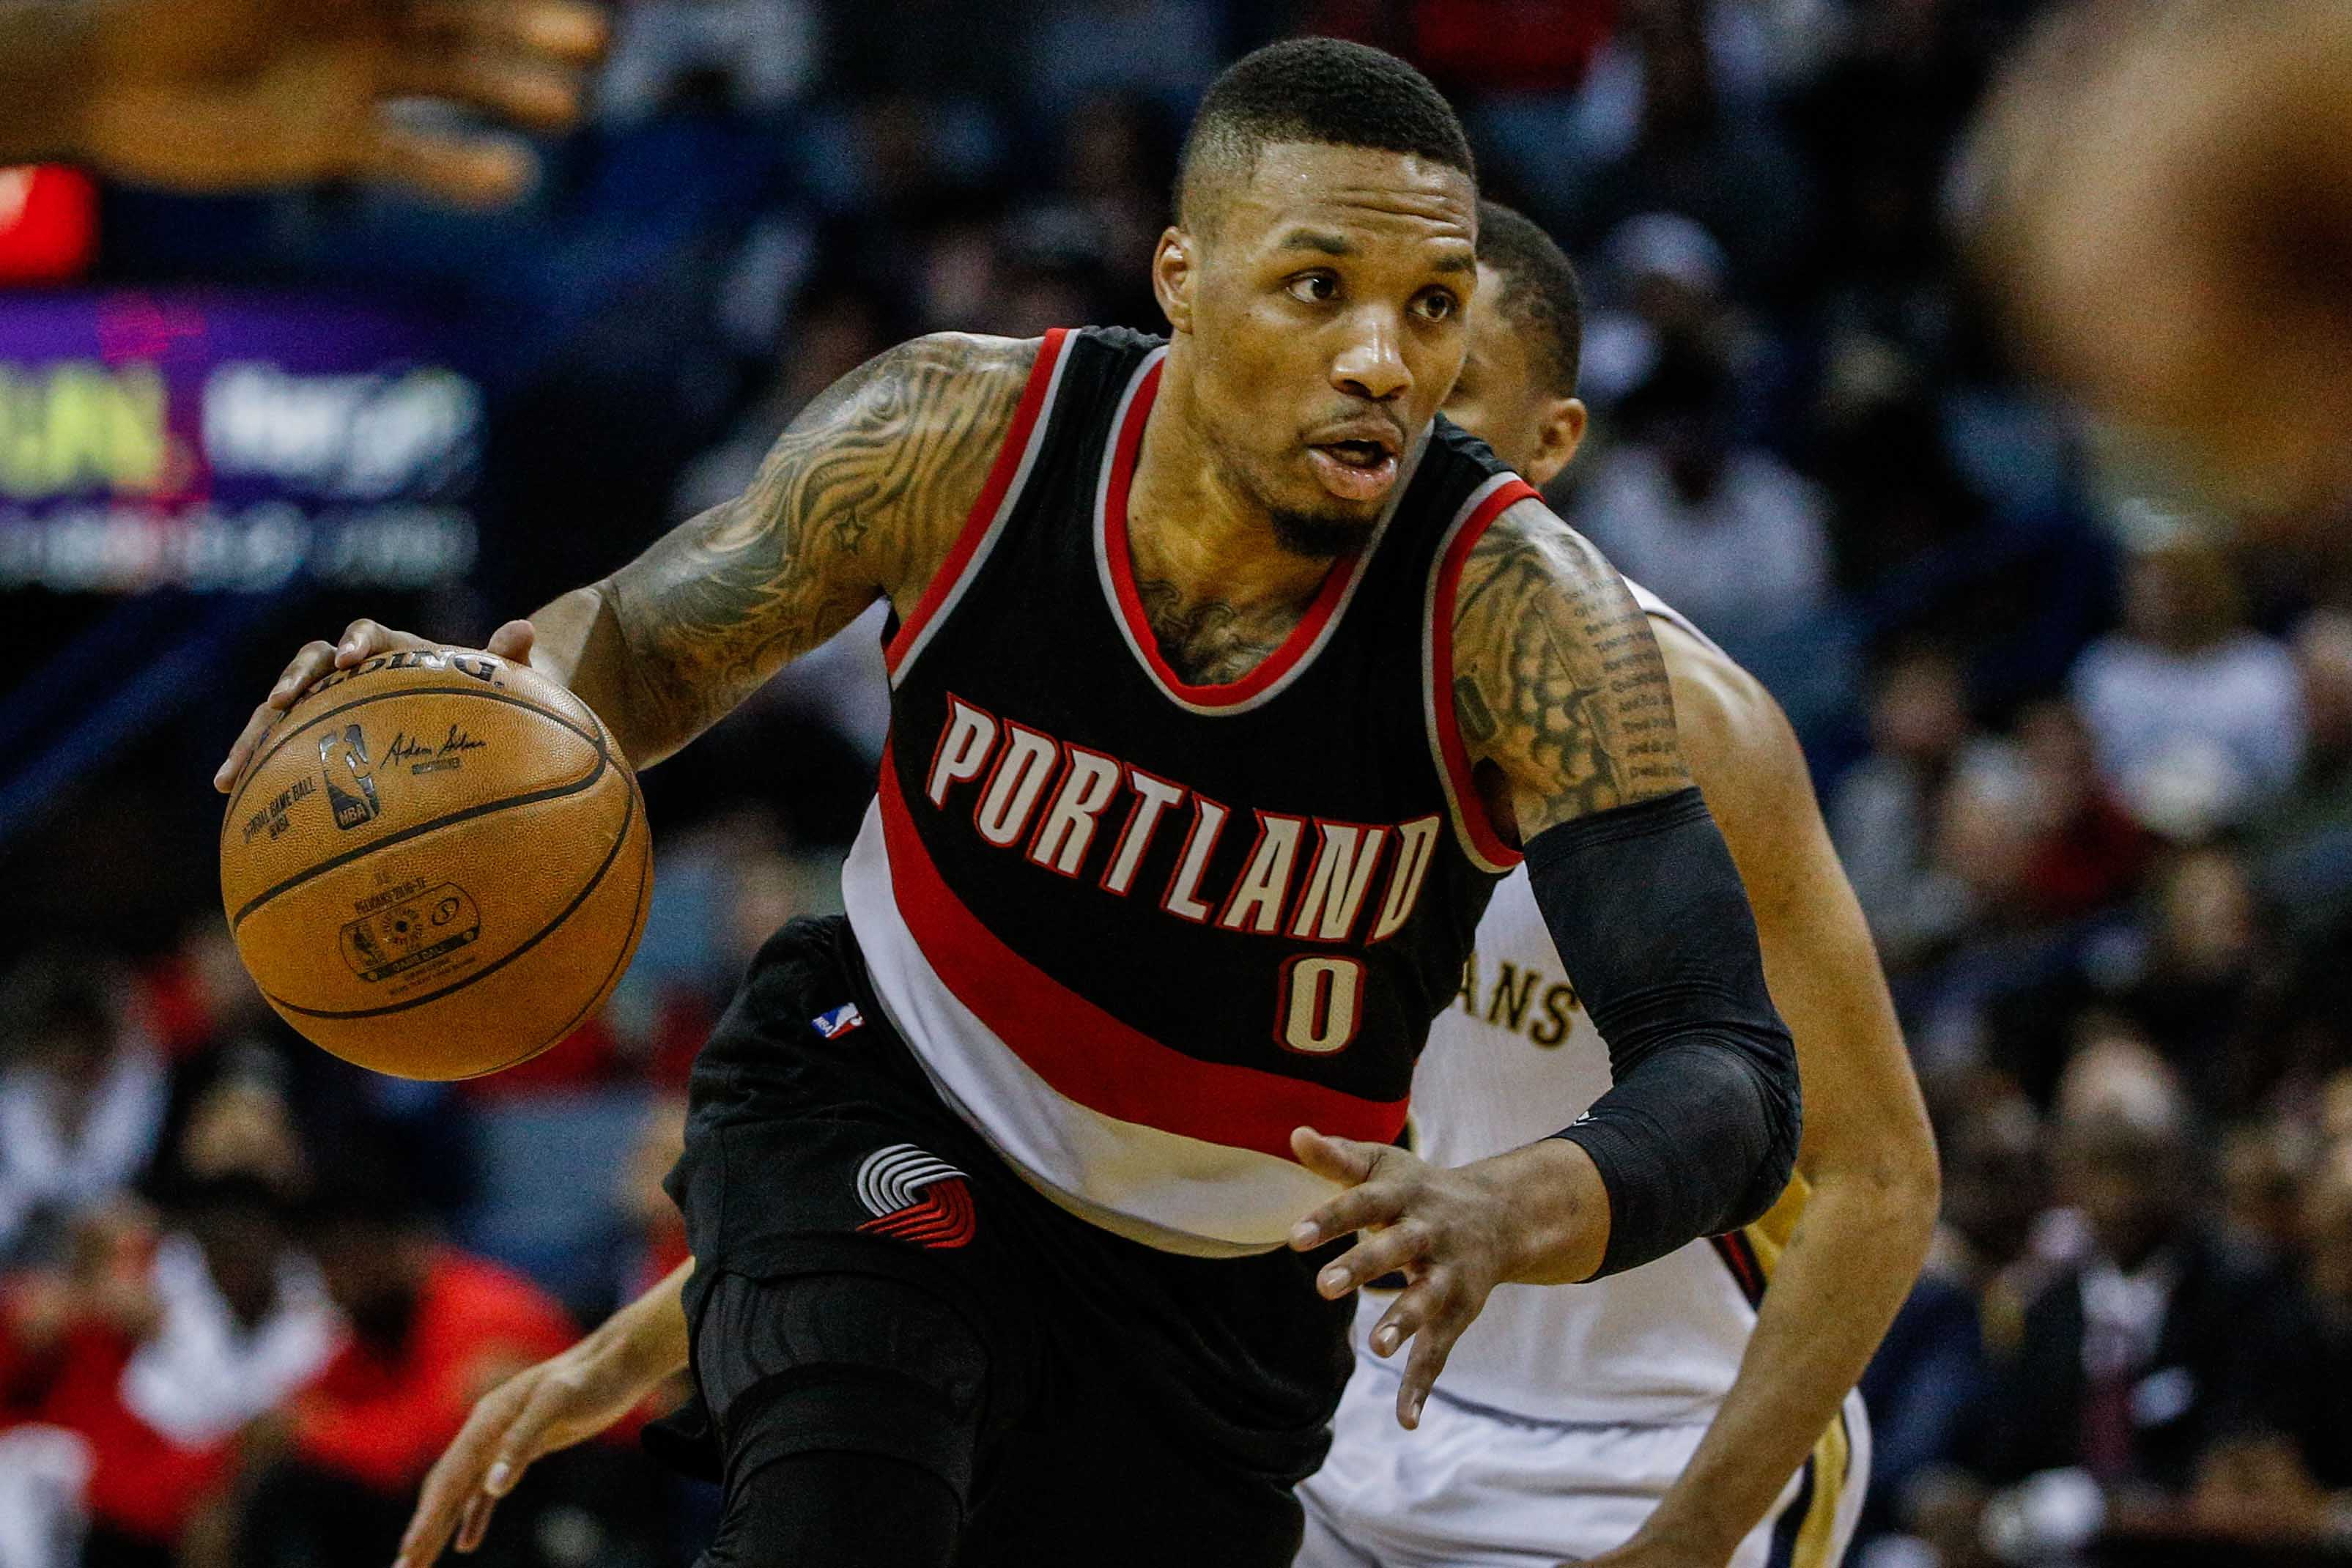 The Portland Trail Blazer Playoff Push Weve All Been